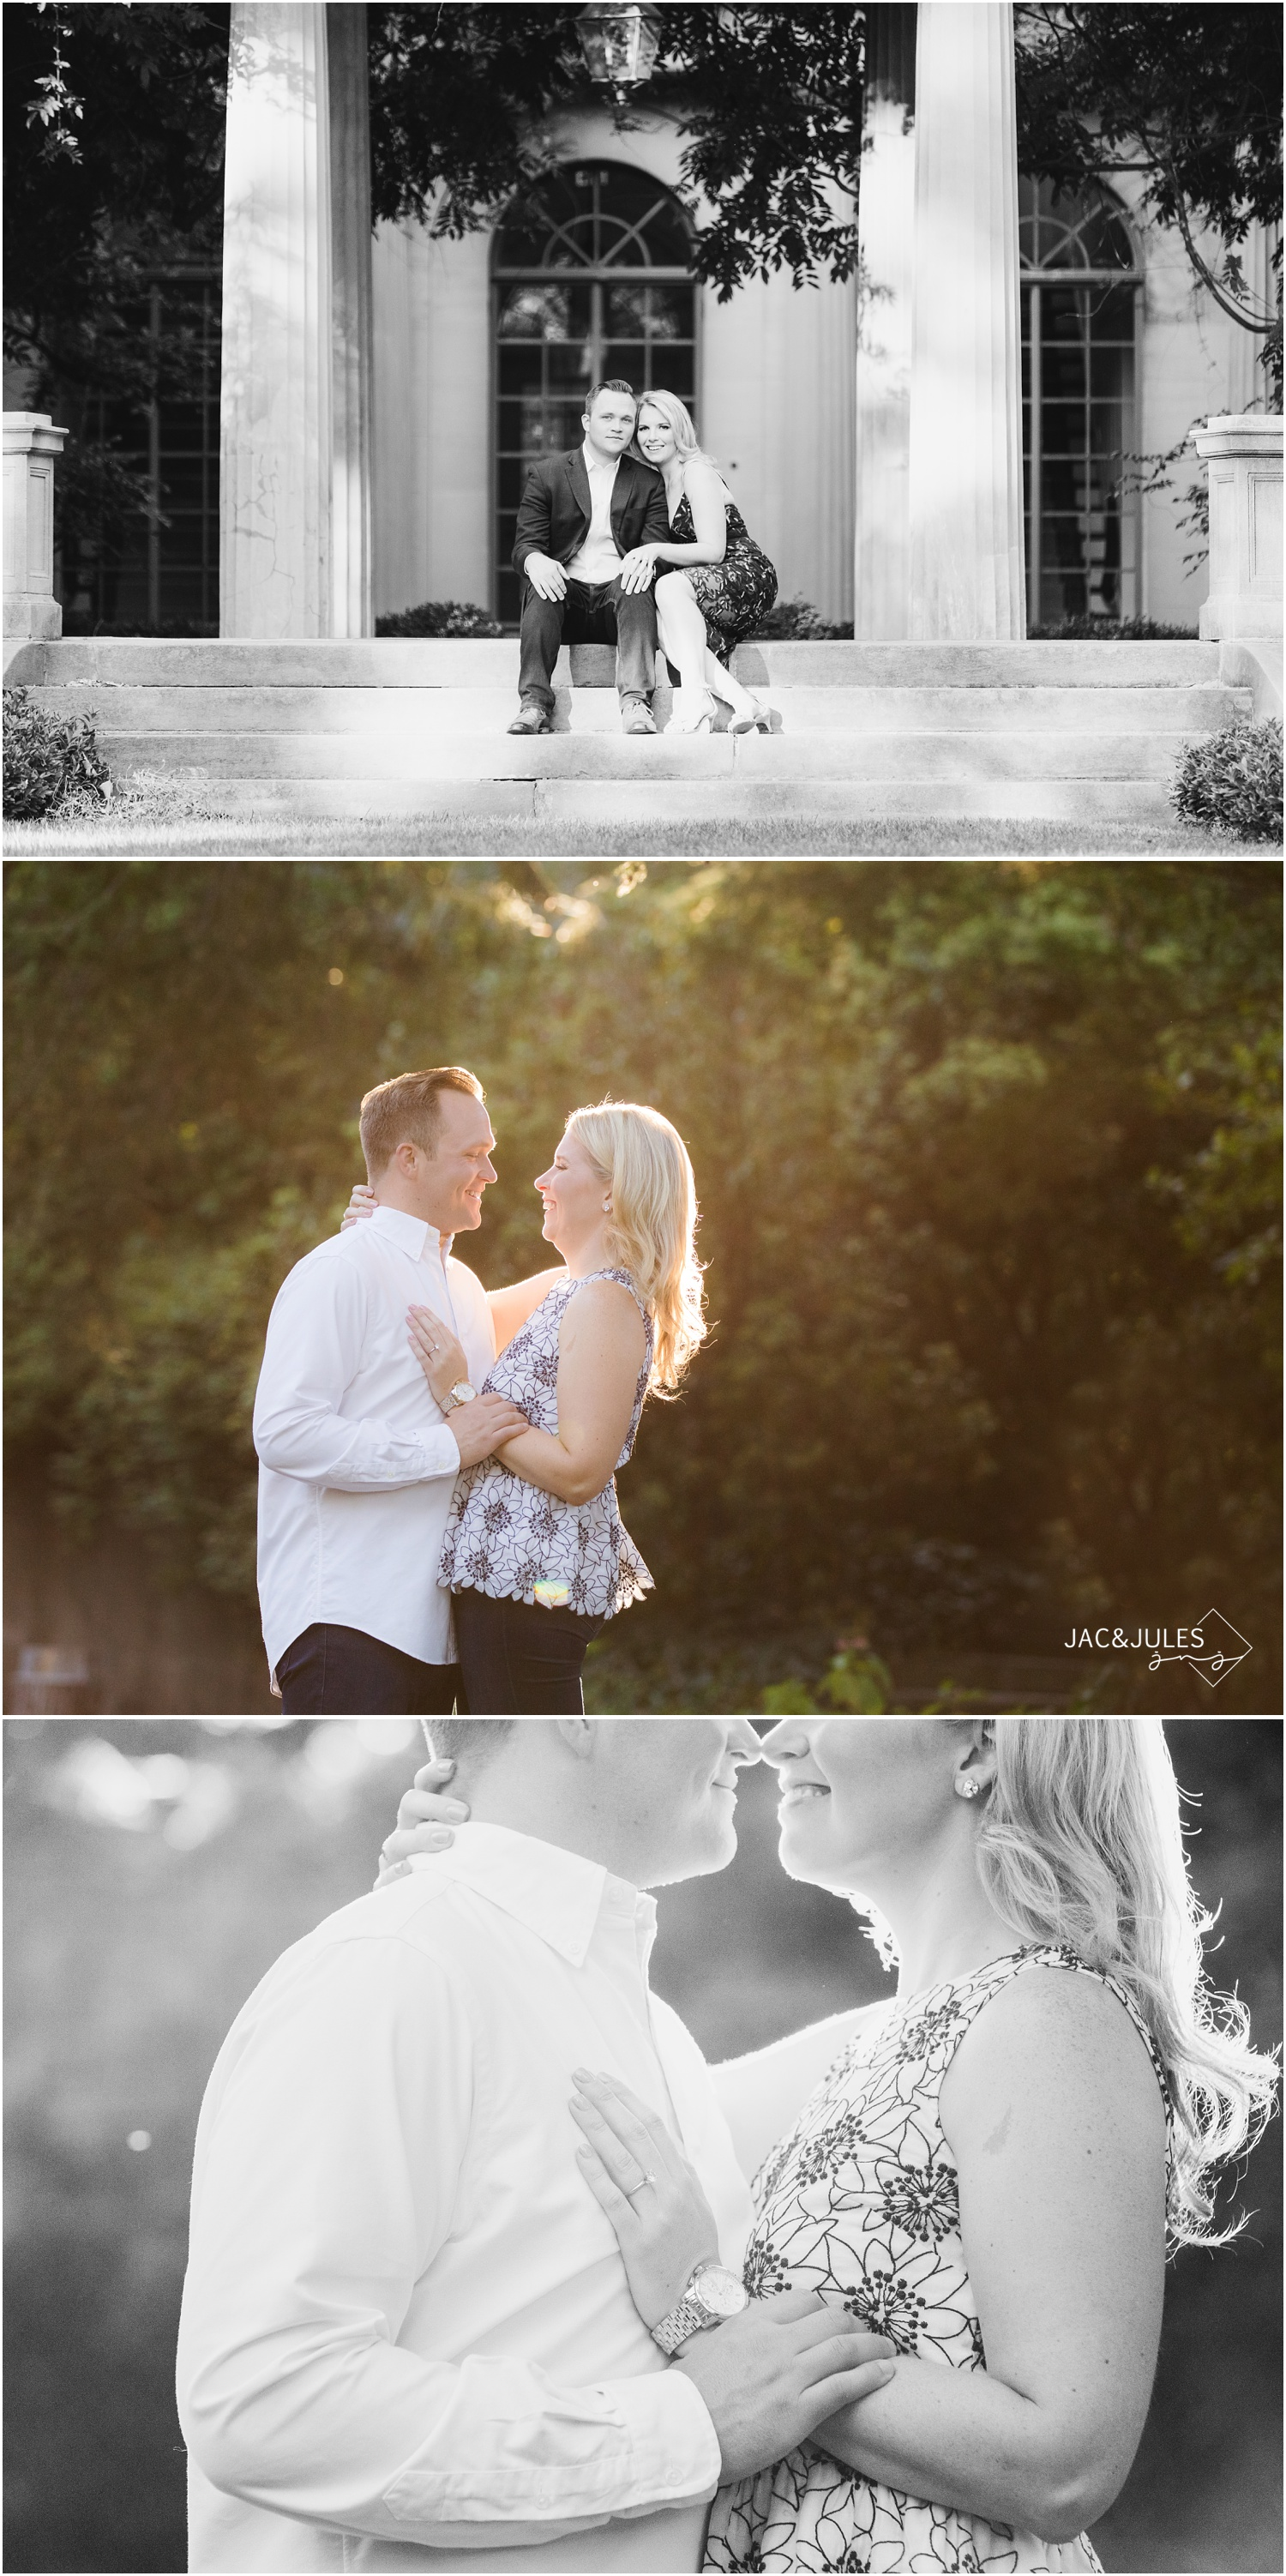 Estate Engagement photos at Van Vleck House and Gardens in Montclair, NJ.